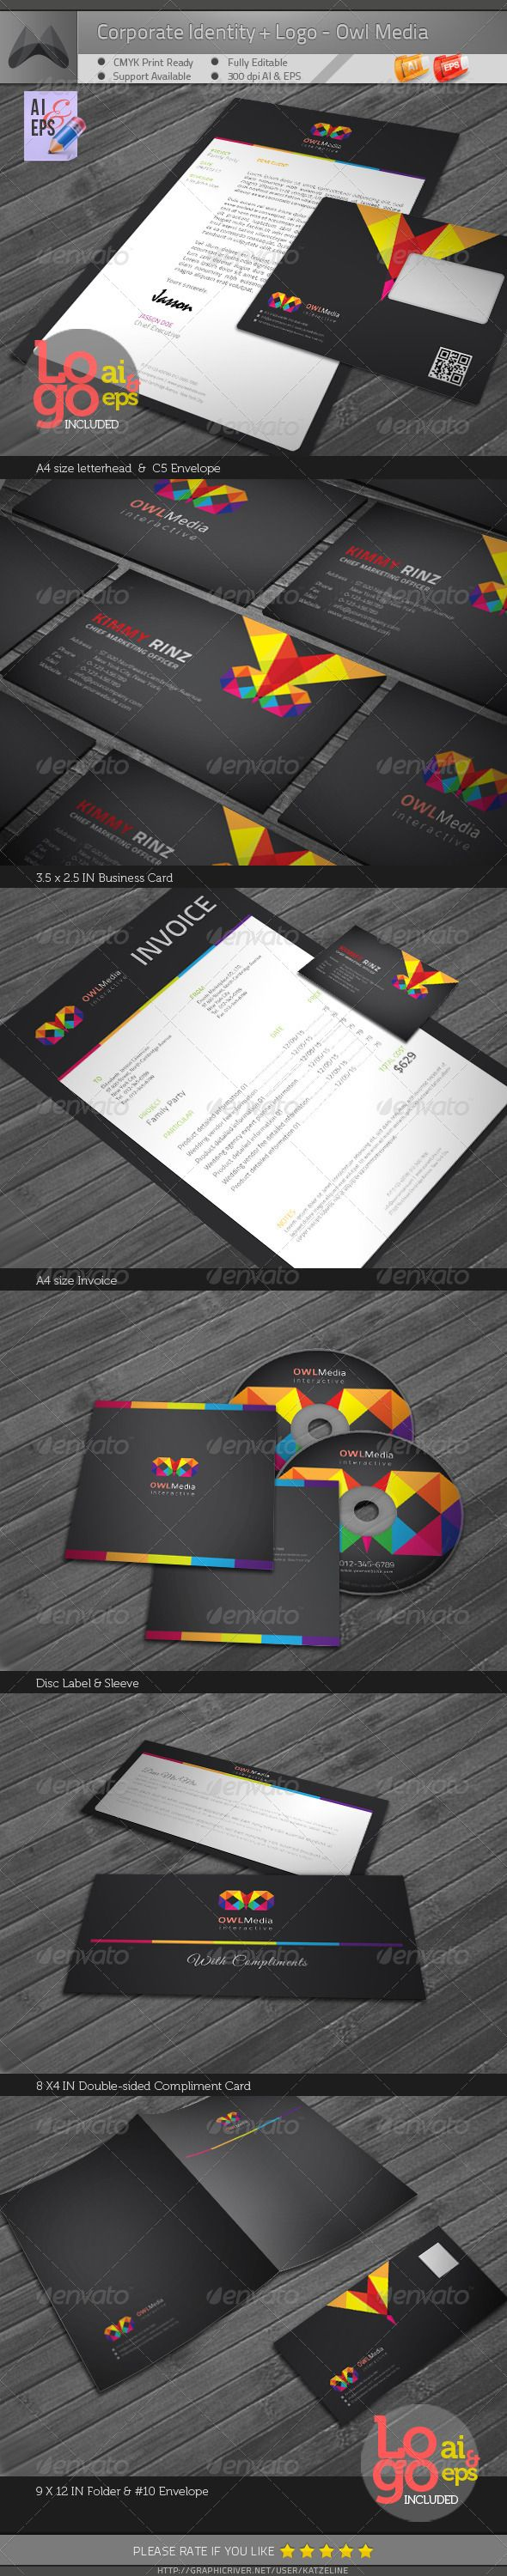 Owl Media - Corporate Identity Package #GraphicRiver [Corporate Identity Package – Owl Media] contains: 1. Letterhead : A4 size 2. Invoice : A4 size 3. Business Card : 3.5X2.5 in 4. C5 Envelope 5. #10 Envelope 6. Disk Label 7. Disk Sleeve 8. Compliments: 8X4 in 9. Presentation Folder: 9×12in 300dip CMYK Print Ready + 0.25in Bleed Adobe AI CS5 & EPS 10.0 Logo Included (AI & EPS)__Please the 'Screenshots' to see the Logo Preview The Identitiy Package is based on the one logo. Other color…